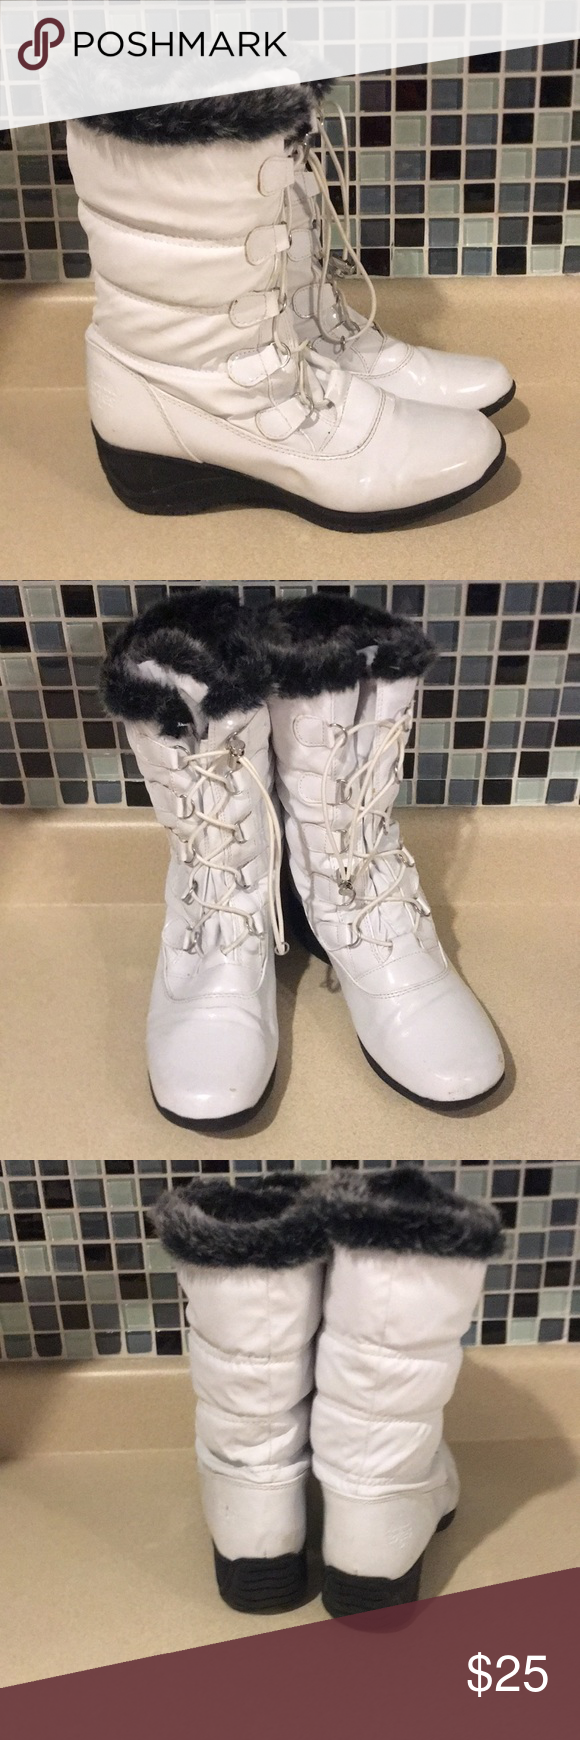 Totes White Winter Snow Boots size 9